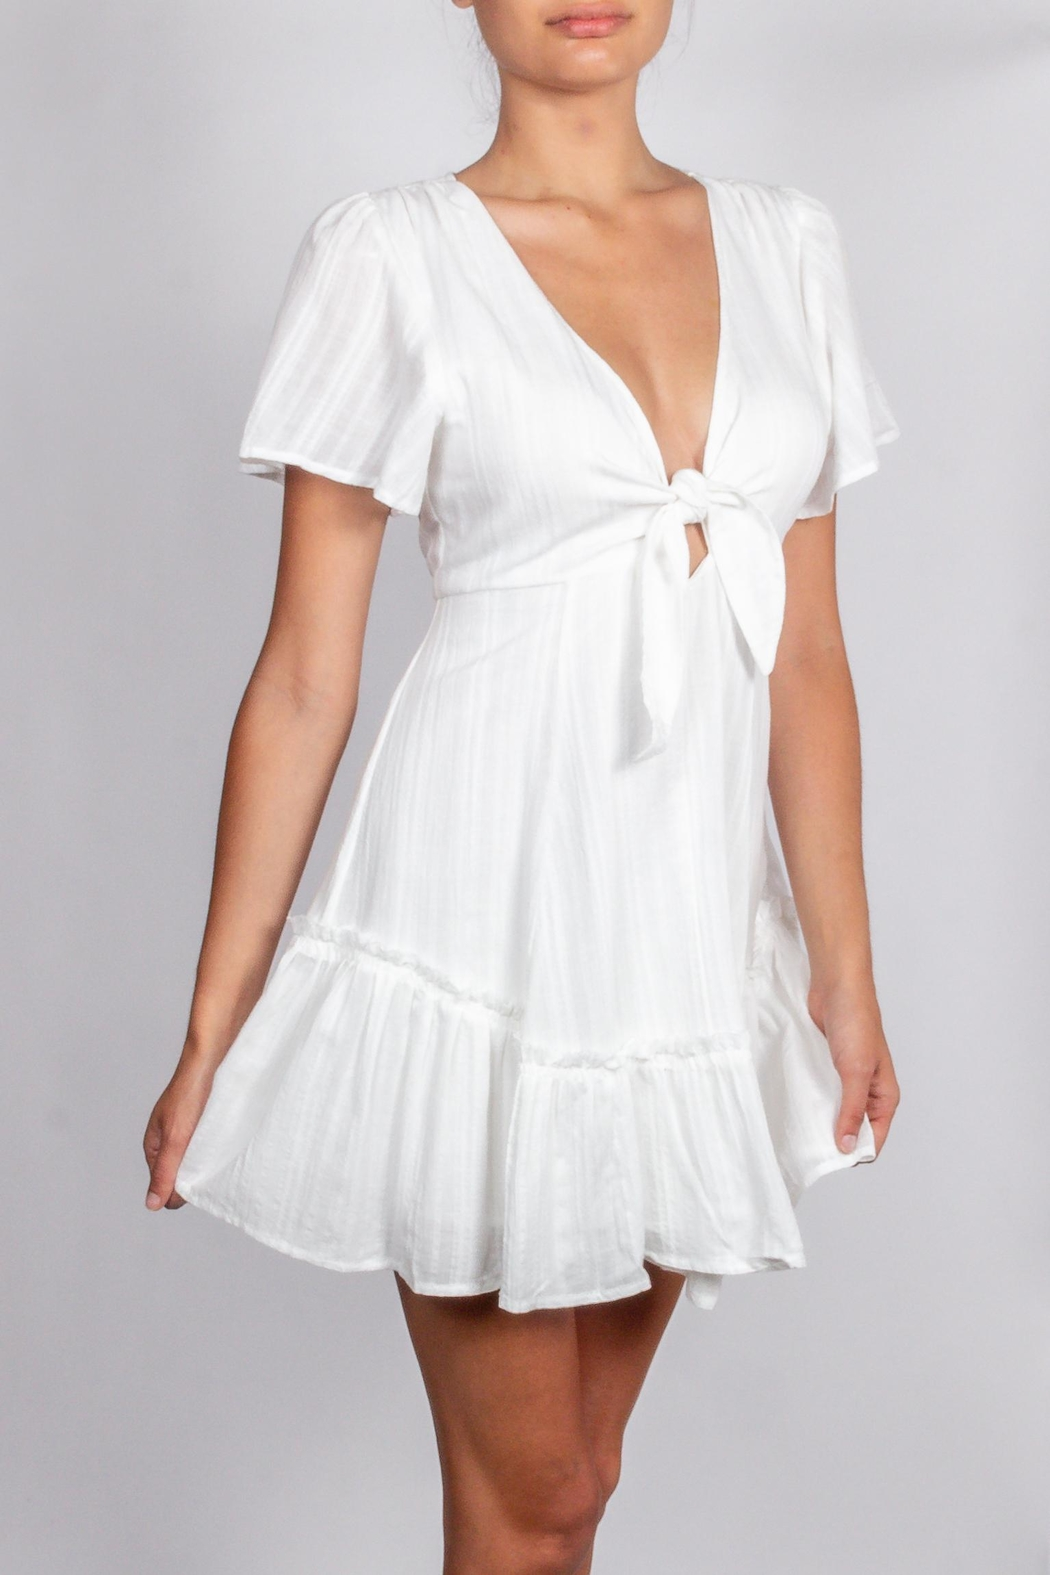 Cotton Candy LA Detailed-White-Tie Chest Dress - Back Cropped Image